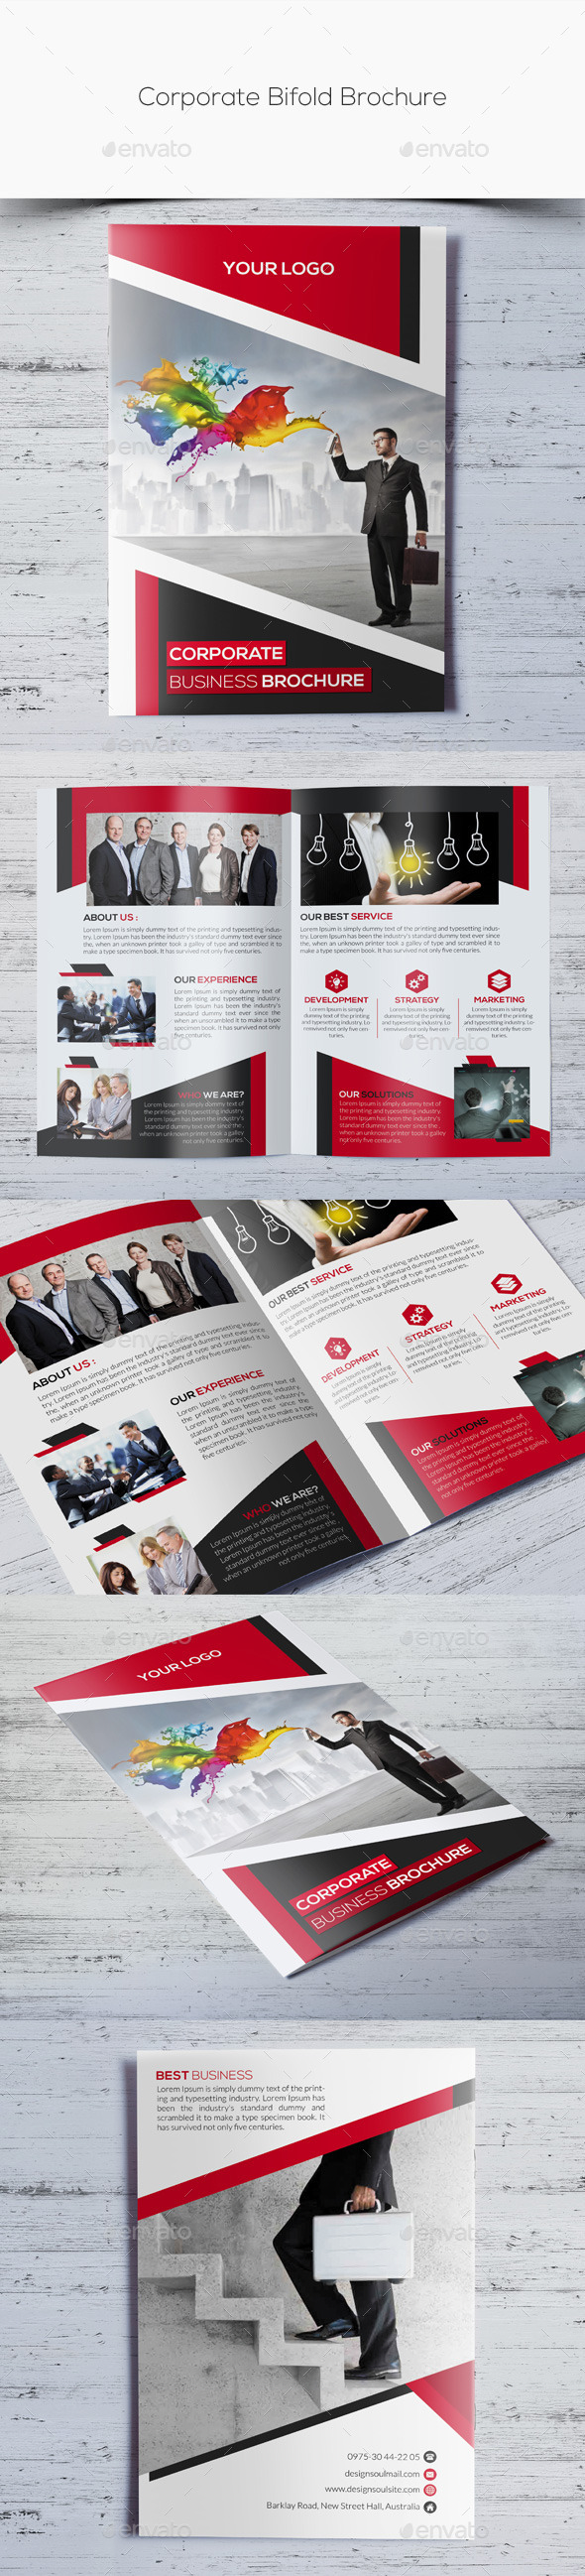 GraphicRiver Corporate Bifold Brochure 10909276